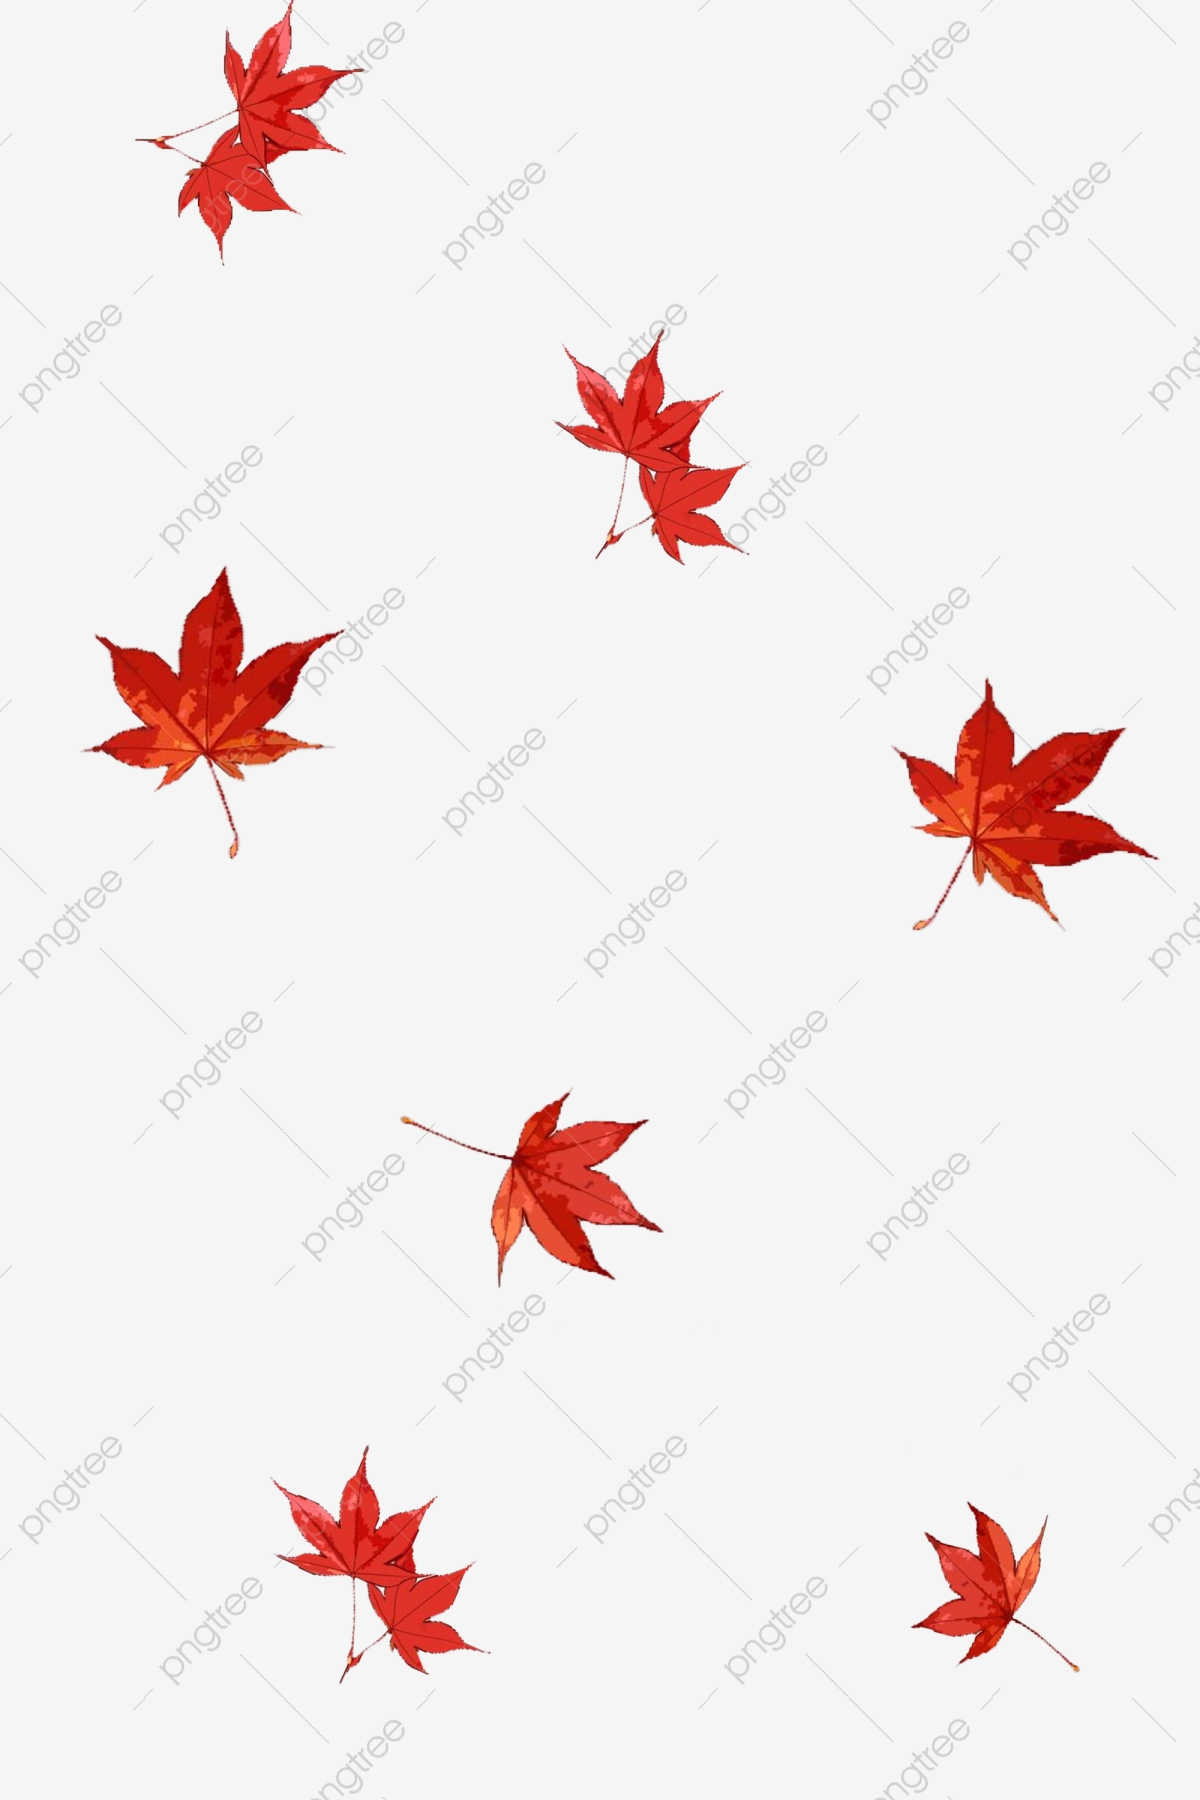 Floating Png Aesthetic Png Decoration Maple Leaf Red Despair Poster Production Png Transparent Clipart Image And Psd File For Free Download